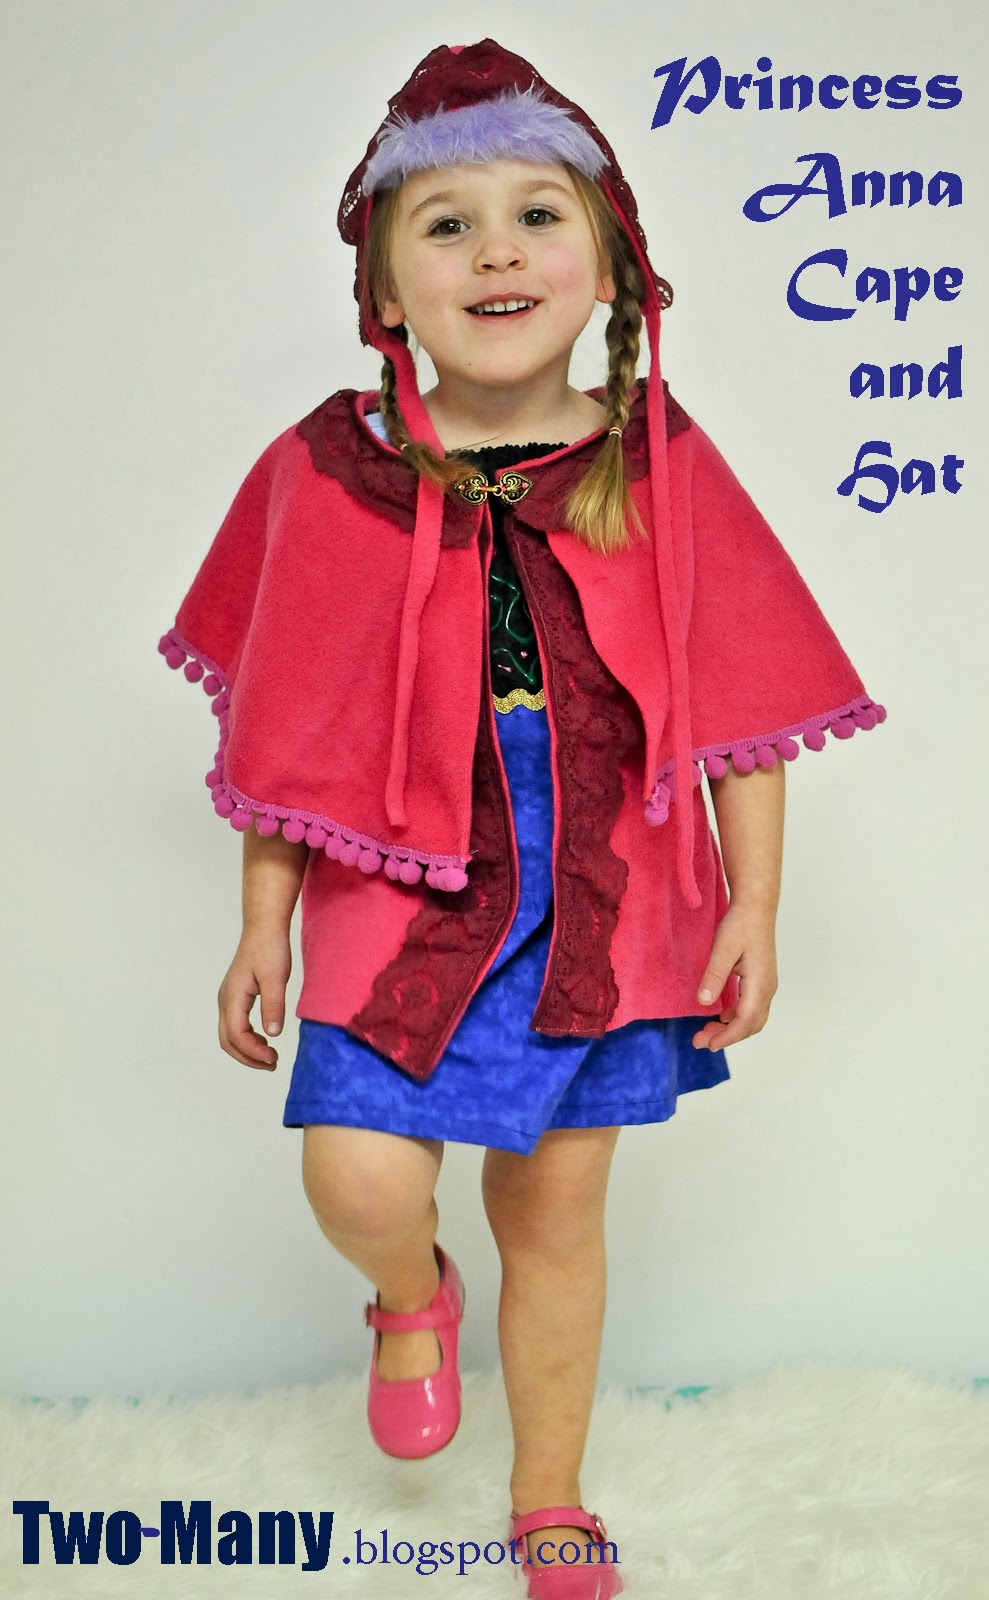 http://two-many.blogspot.com/2014/01/princess-anna-cape.html